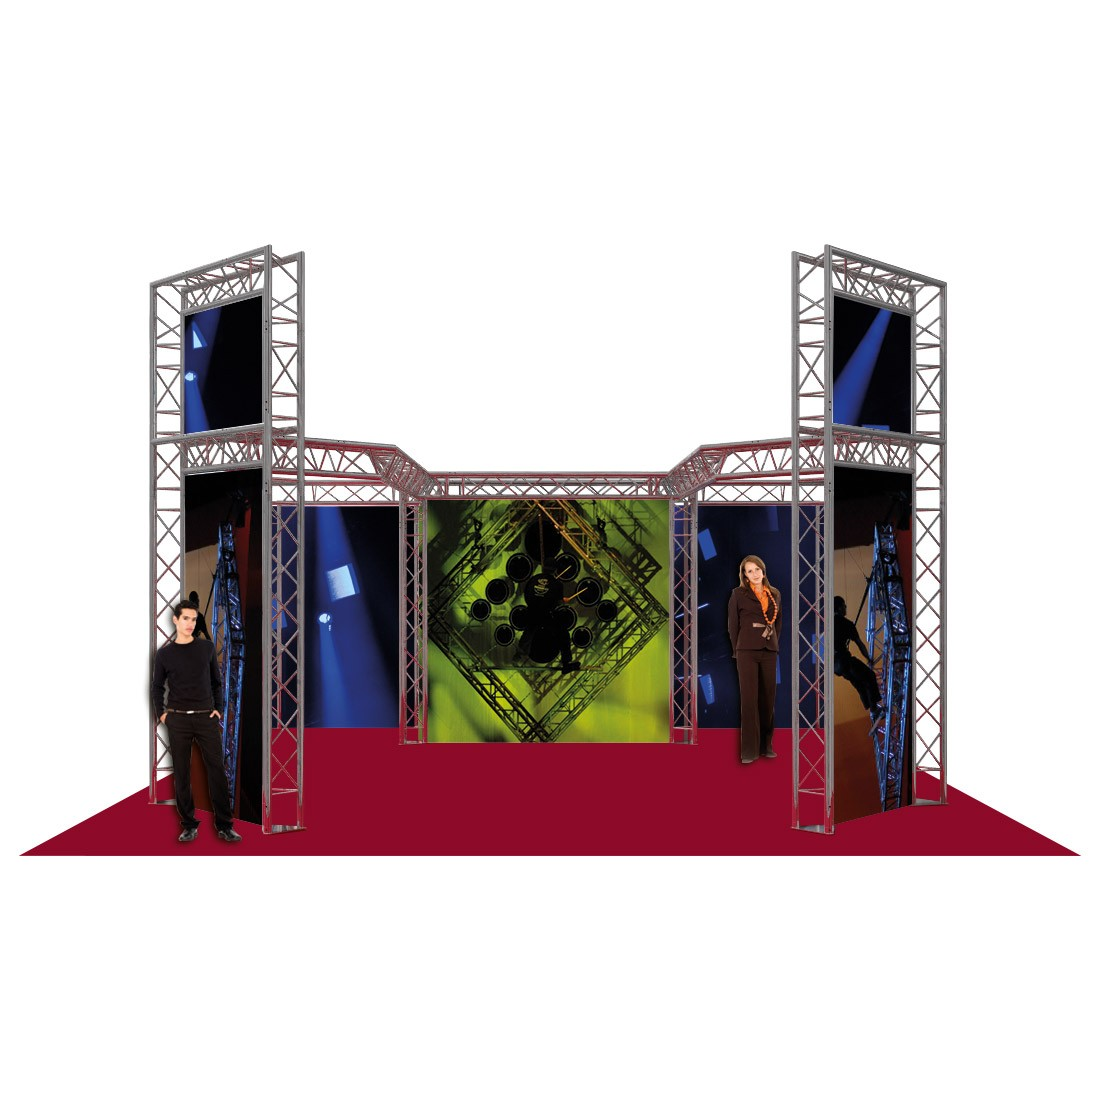 Messestand 6 x 5,5 x 3,6 mtr. (DT 33)